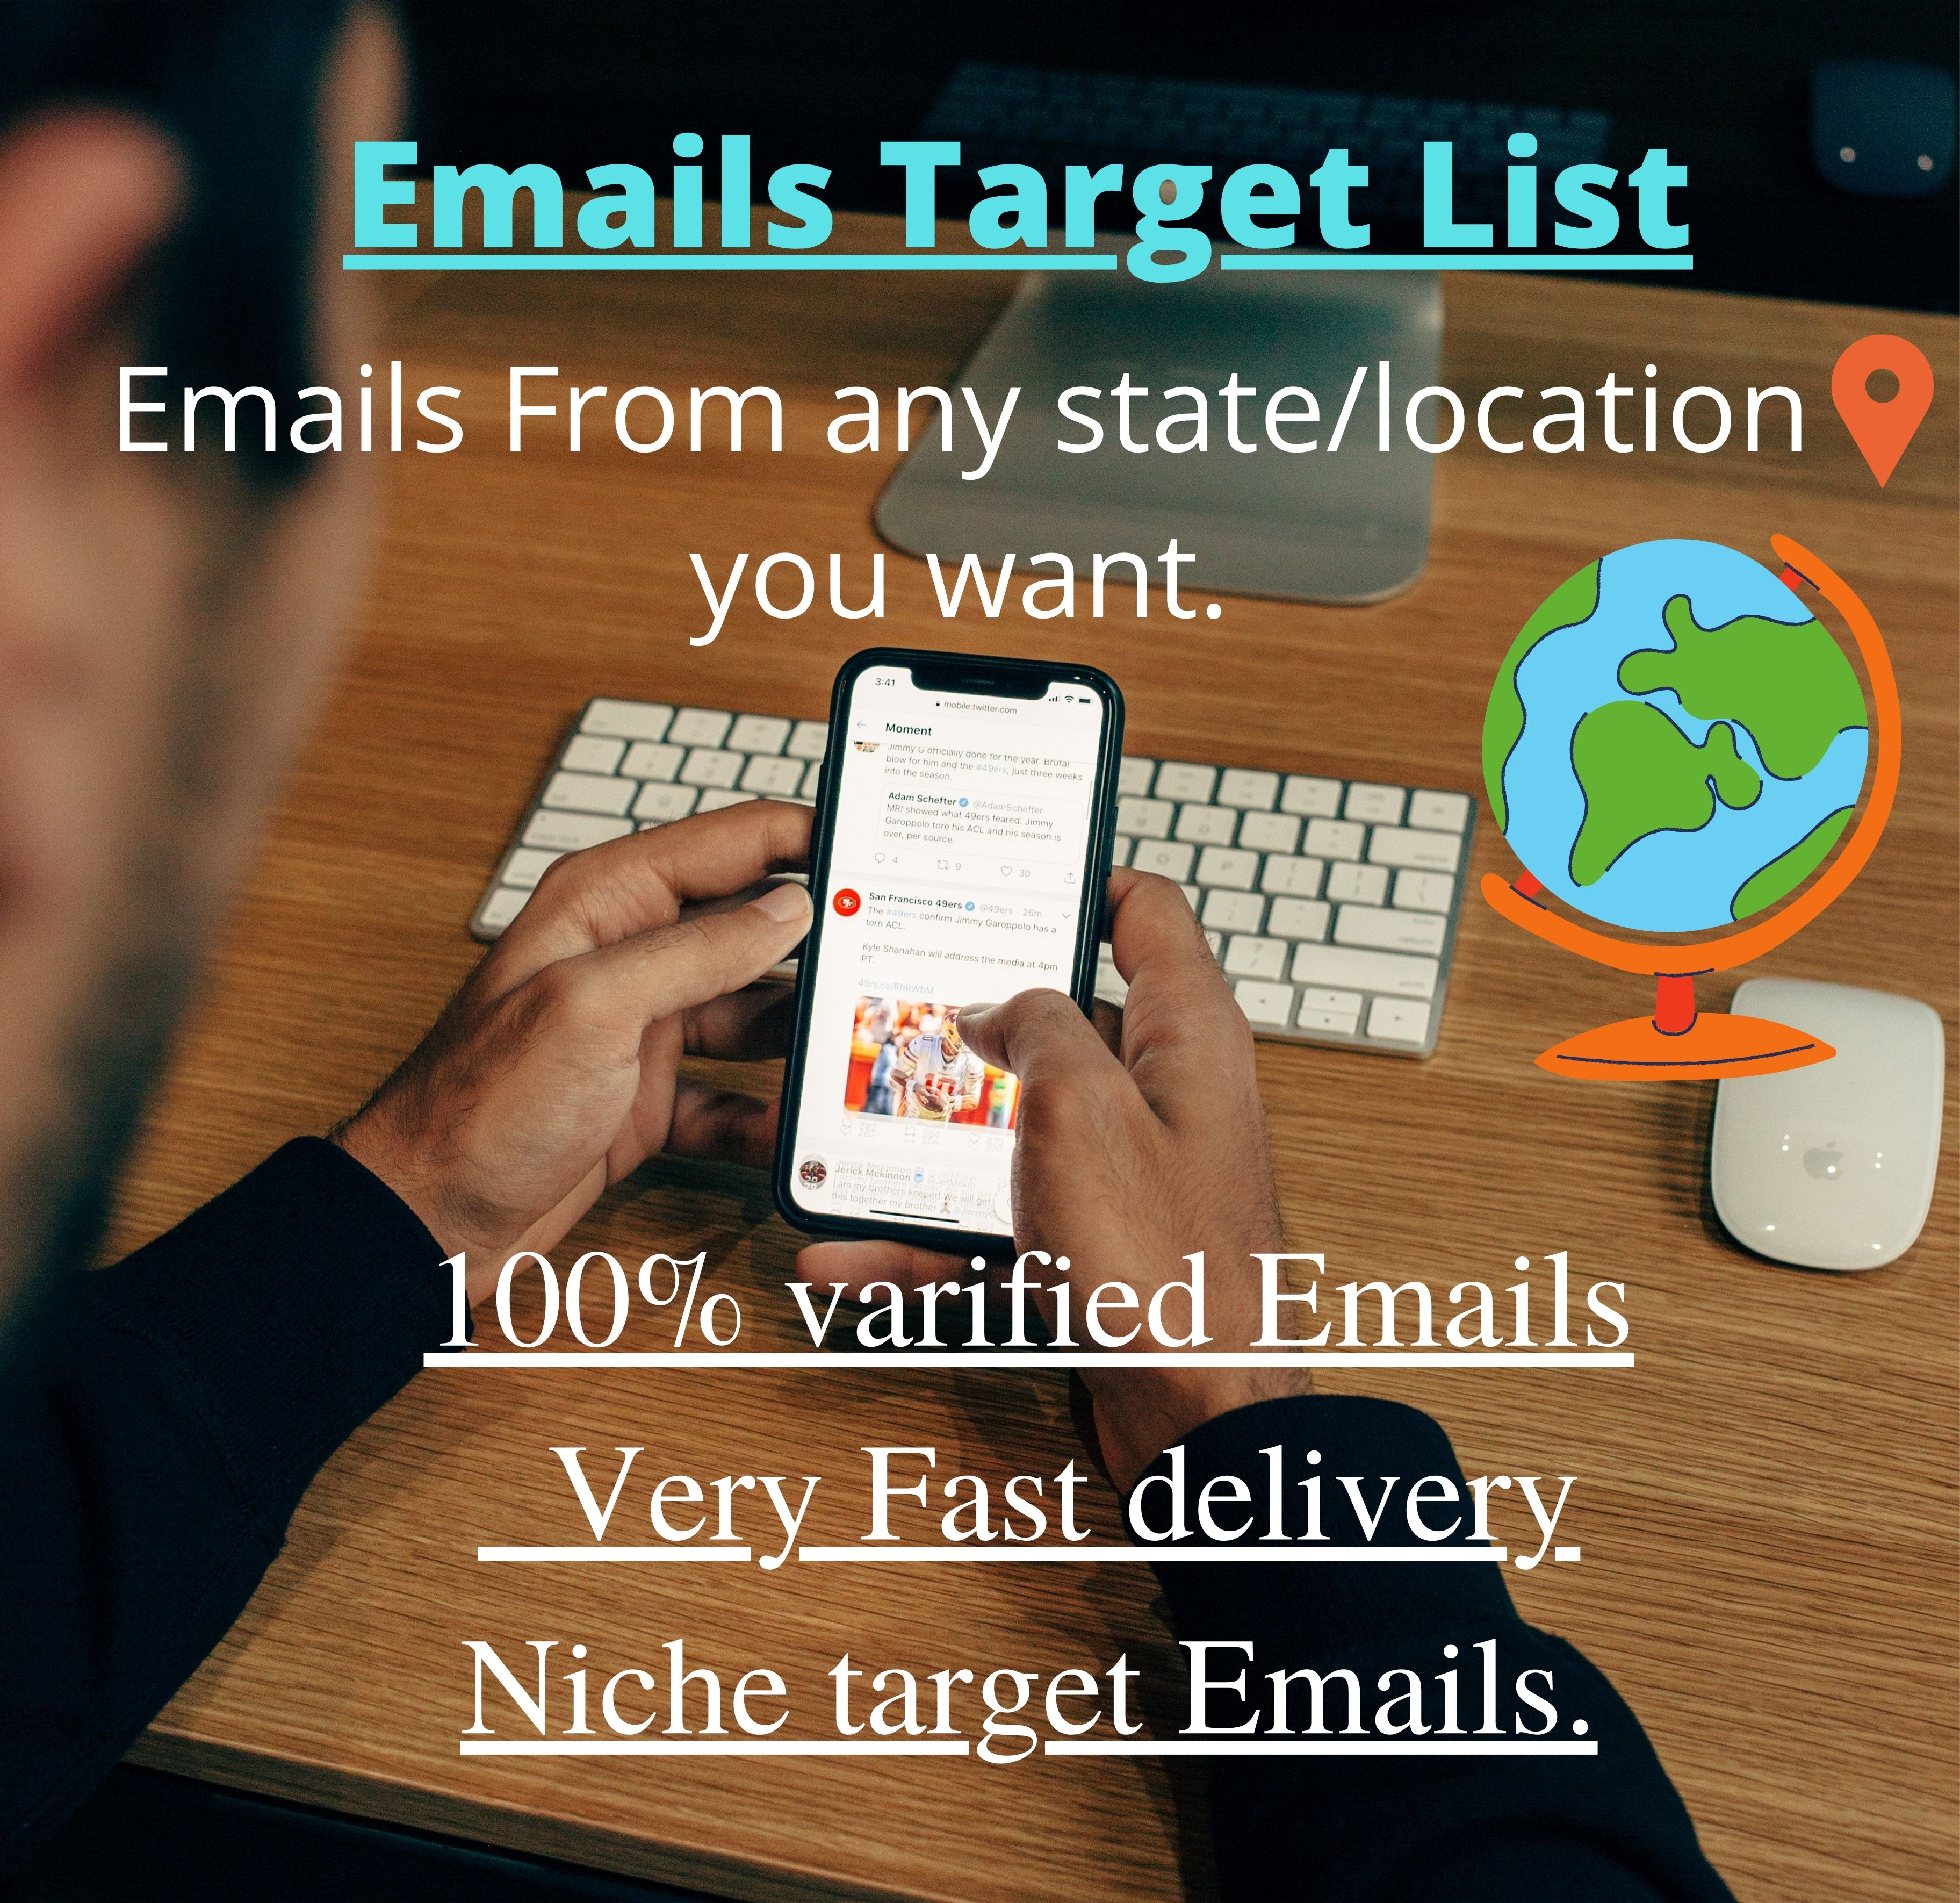 I will collect and provide 1500 niche targeted emails list